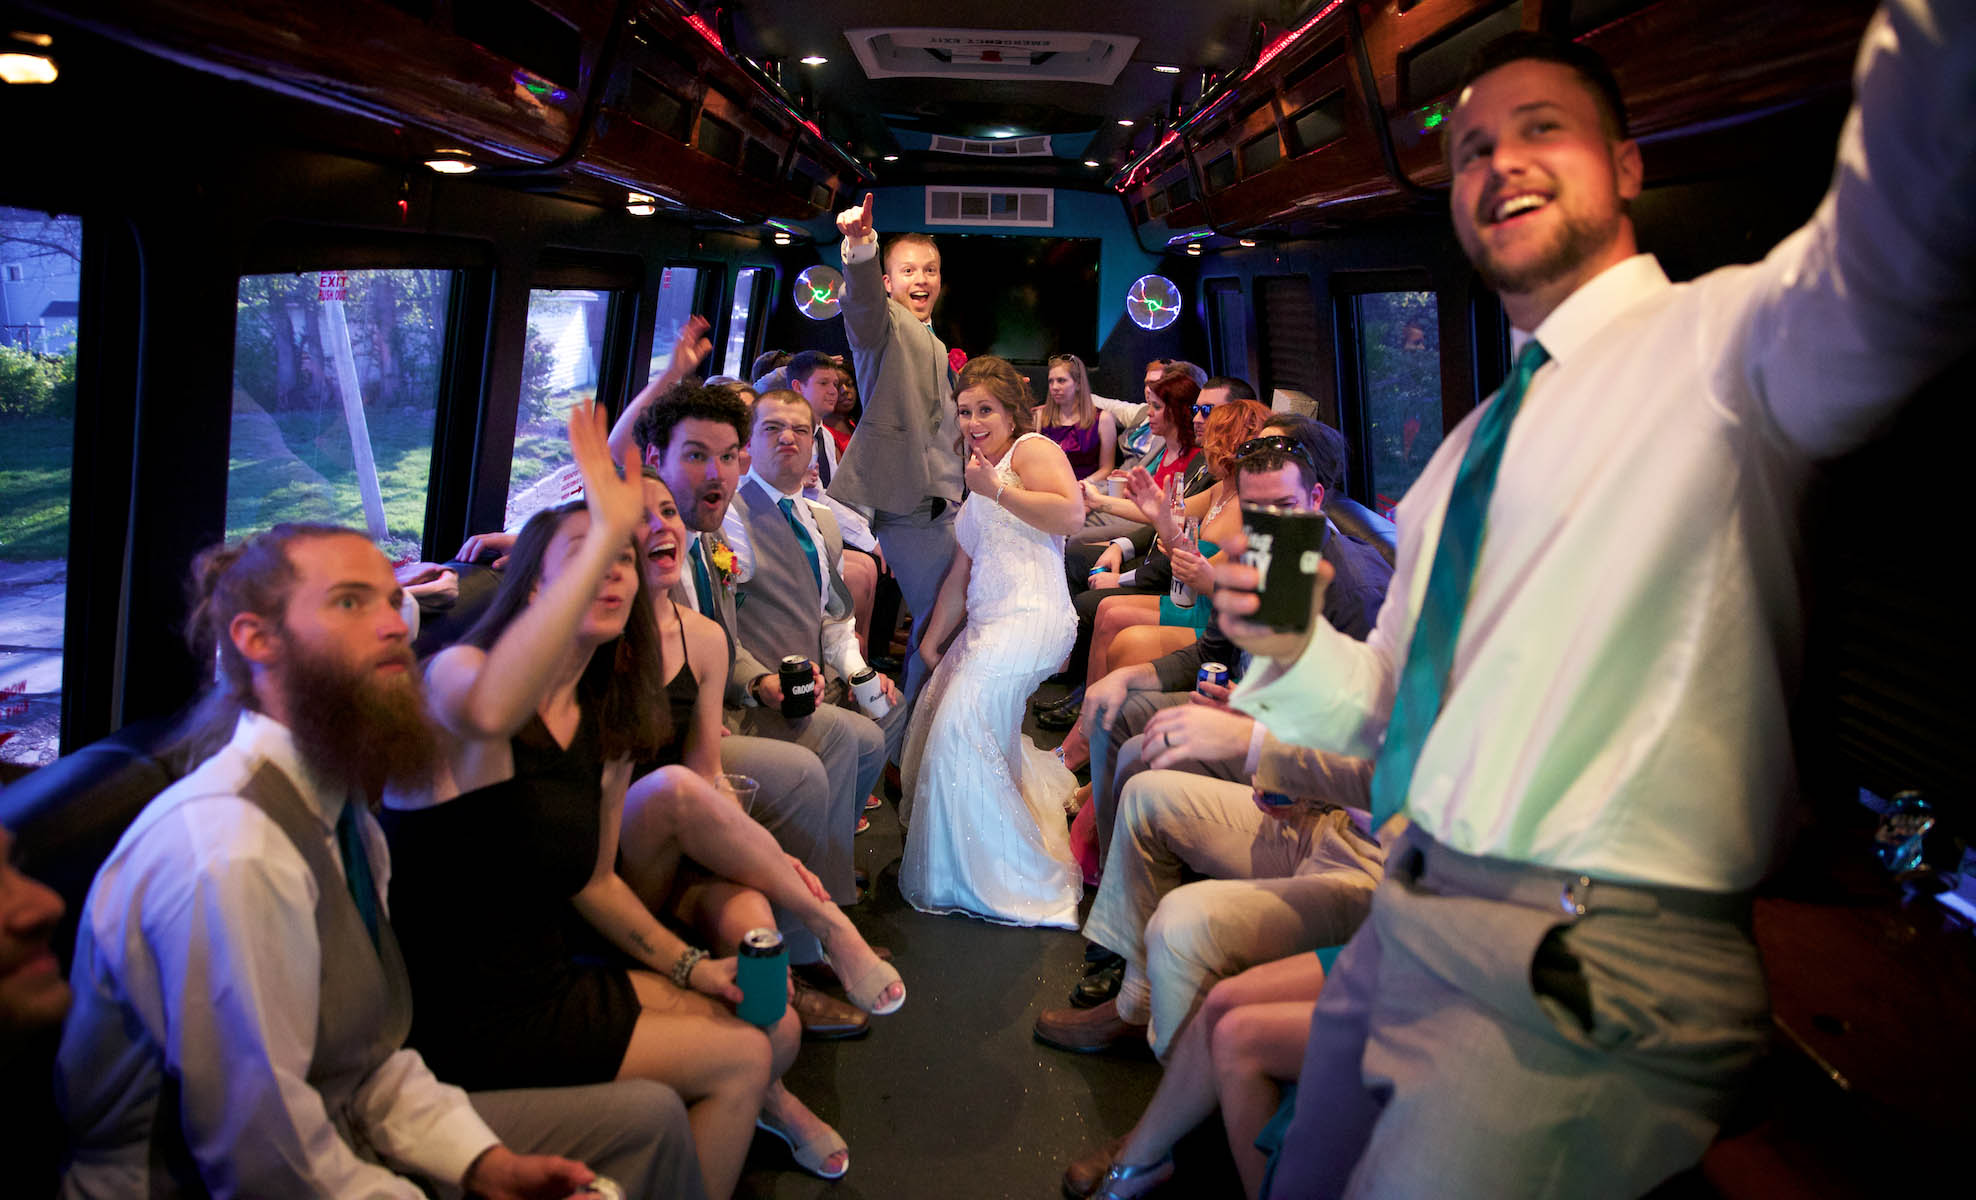 Back on the party bus for the final leg to Hamilton's 110 North East. Wedding pictures by Tiffany & Steve of Warmowski Photography.